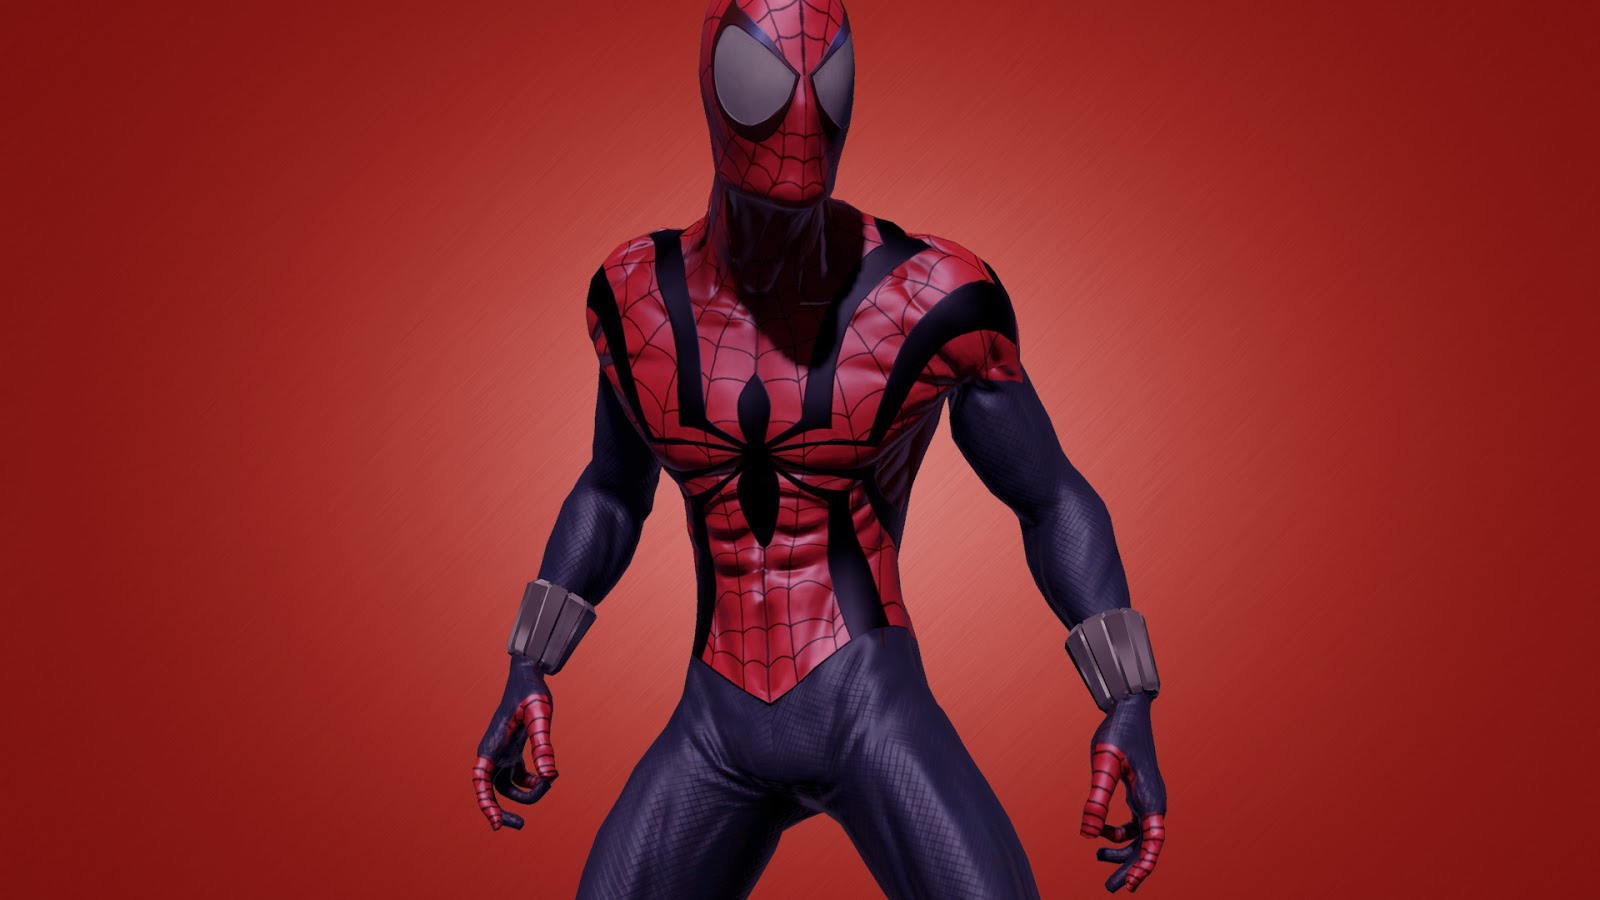 HD Spiderman 1080p Wallpapers